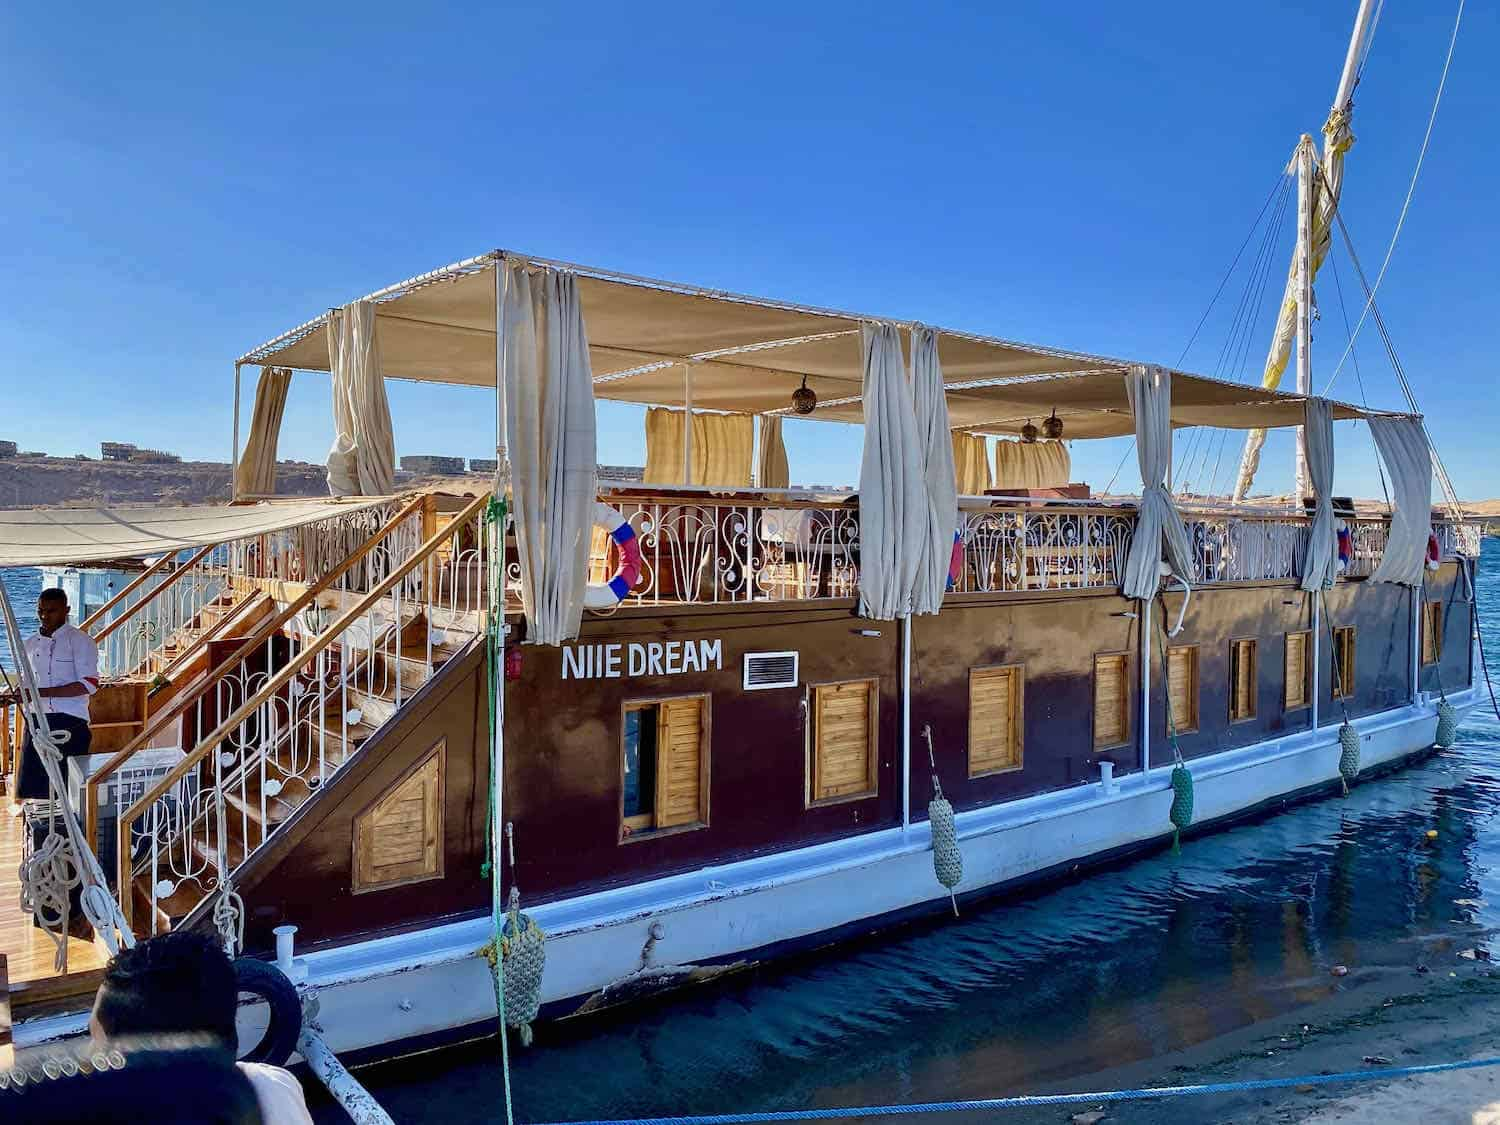 Double decker river boat on the Nile River